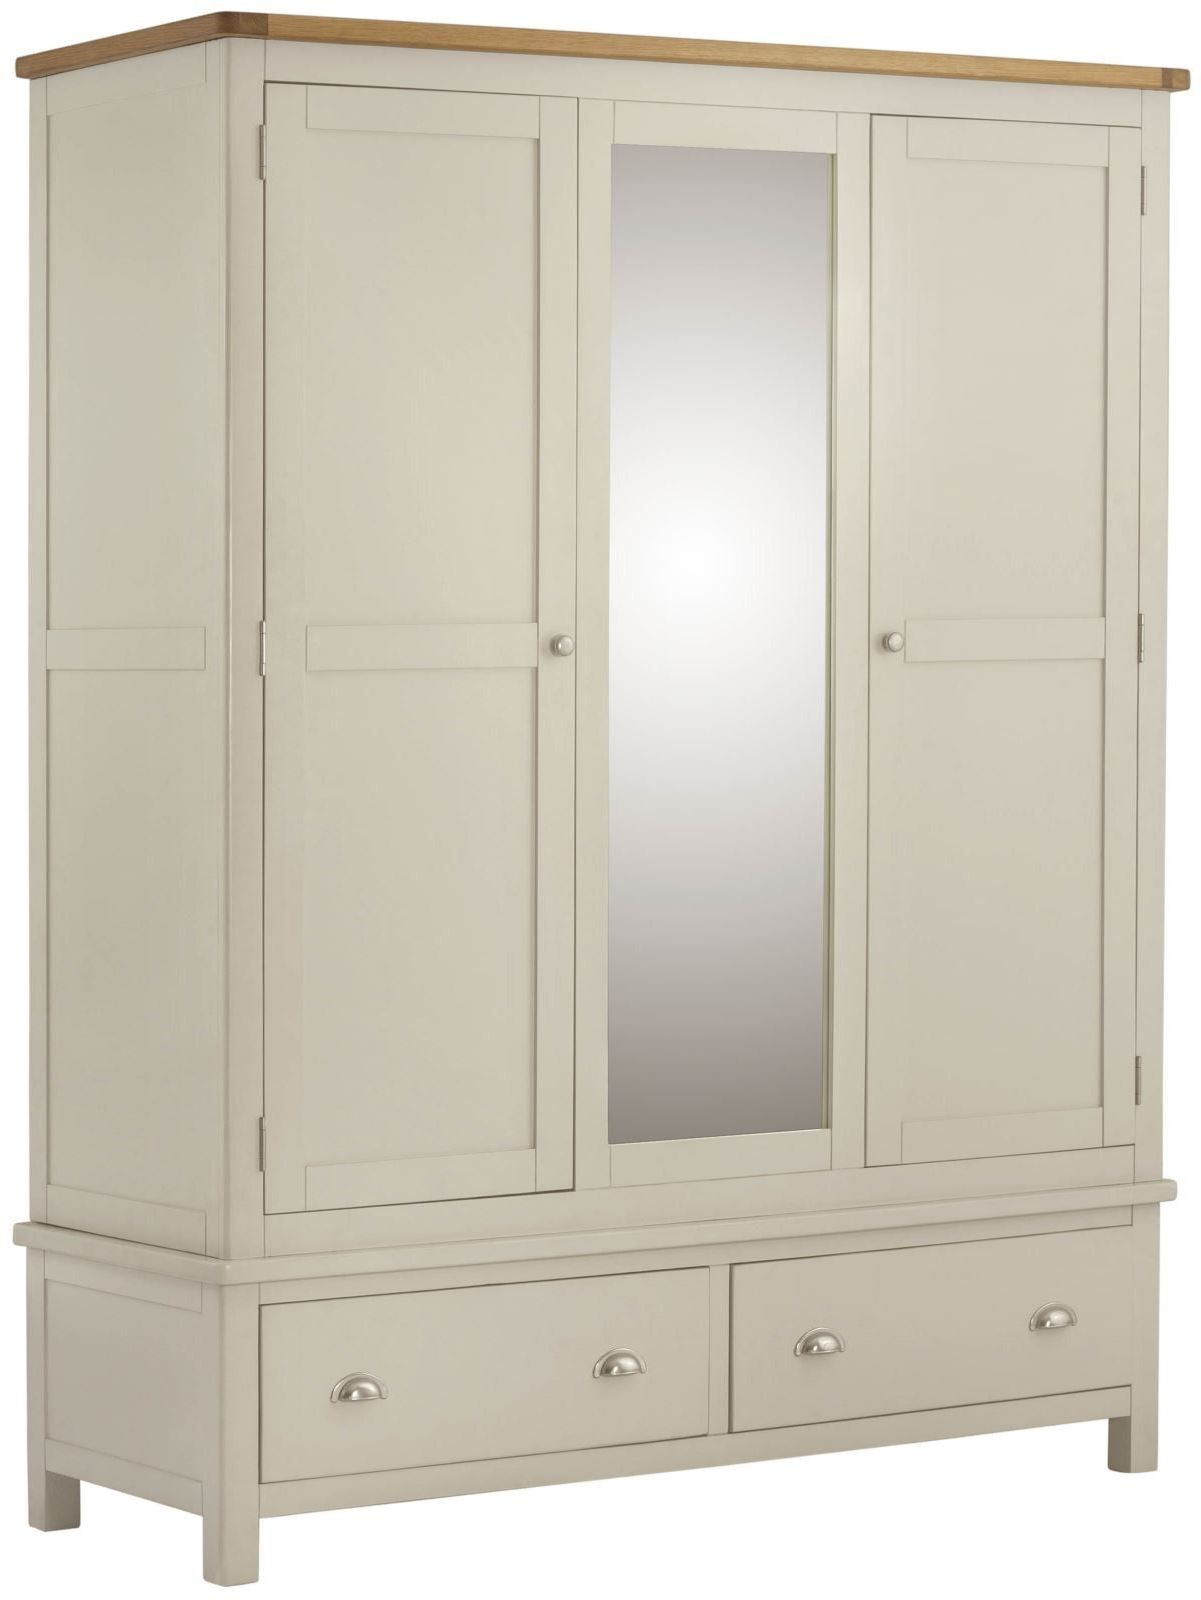 Stratton Cream Wardrobe Triple